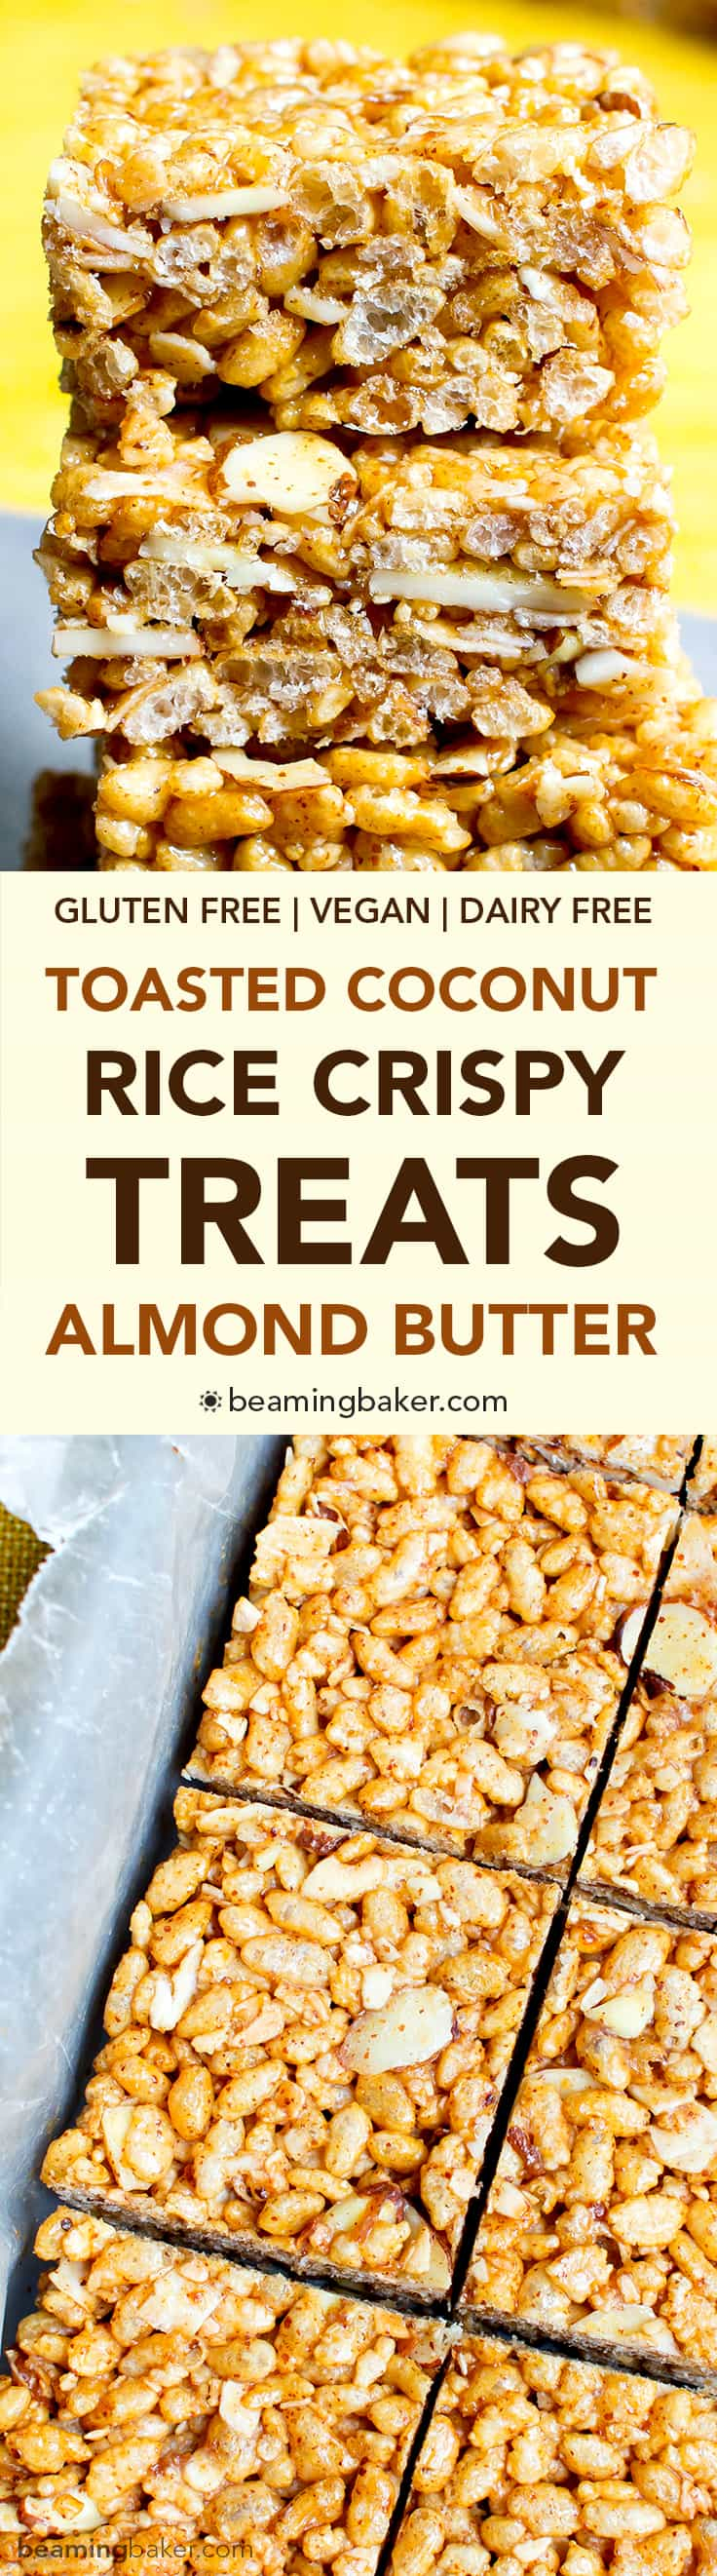 Toasted Coconut Almond Rice Crispy Treats (V+GF): an easy, 5 ingredient recipe for sweetly satisfying, protein-packed toasted coconut rice crispy treats. #Vegan #GlutenFree #DairyFree | BeamingBaker.com